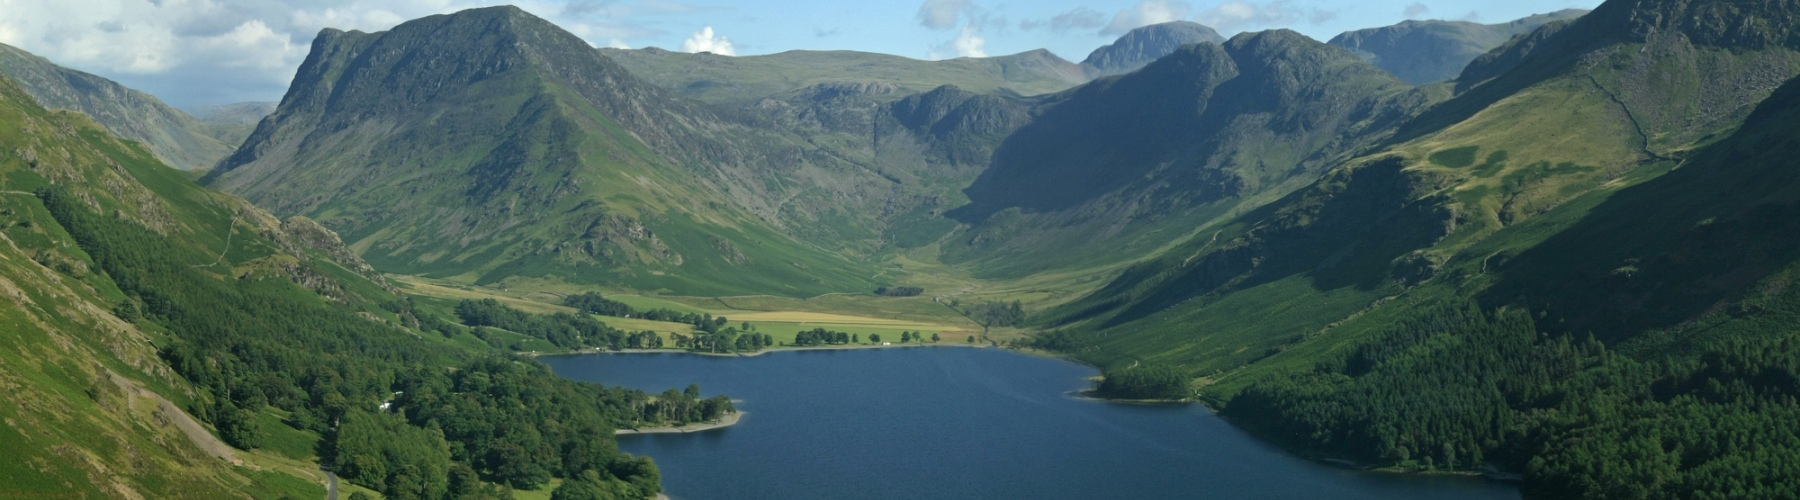 DP0065-Buttermere-Valley-from-the-air